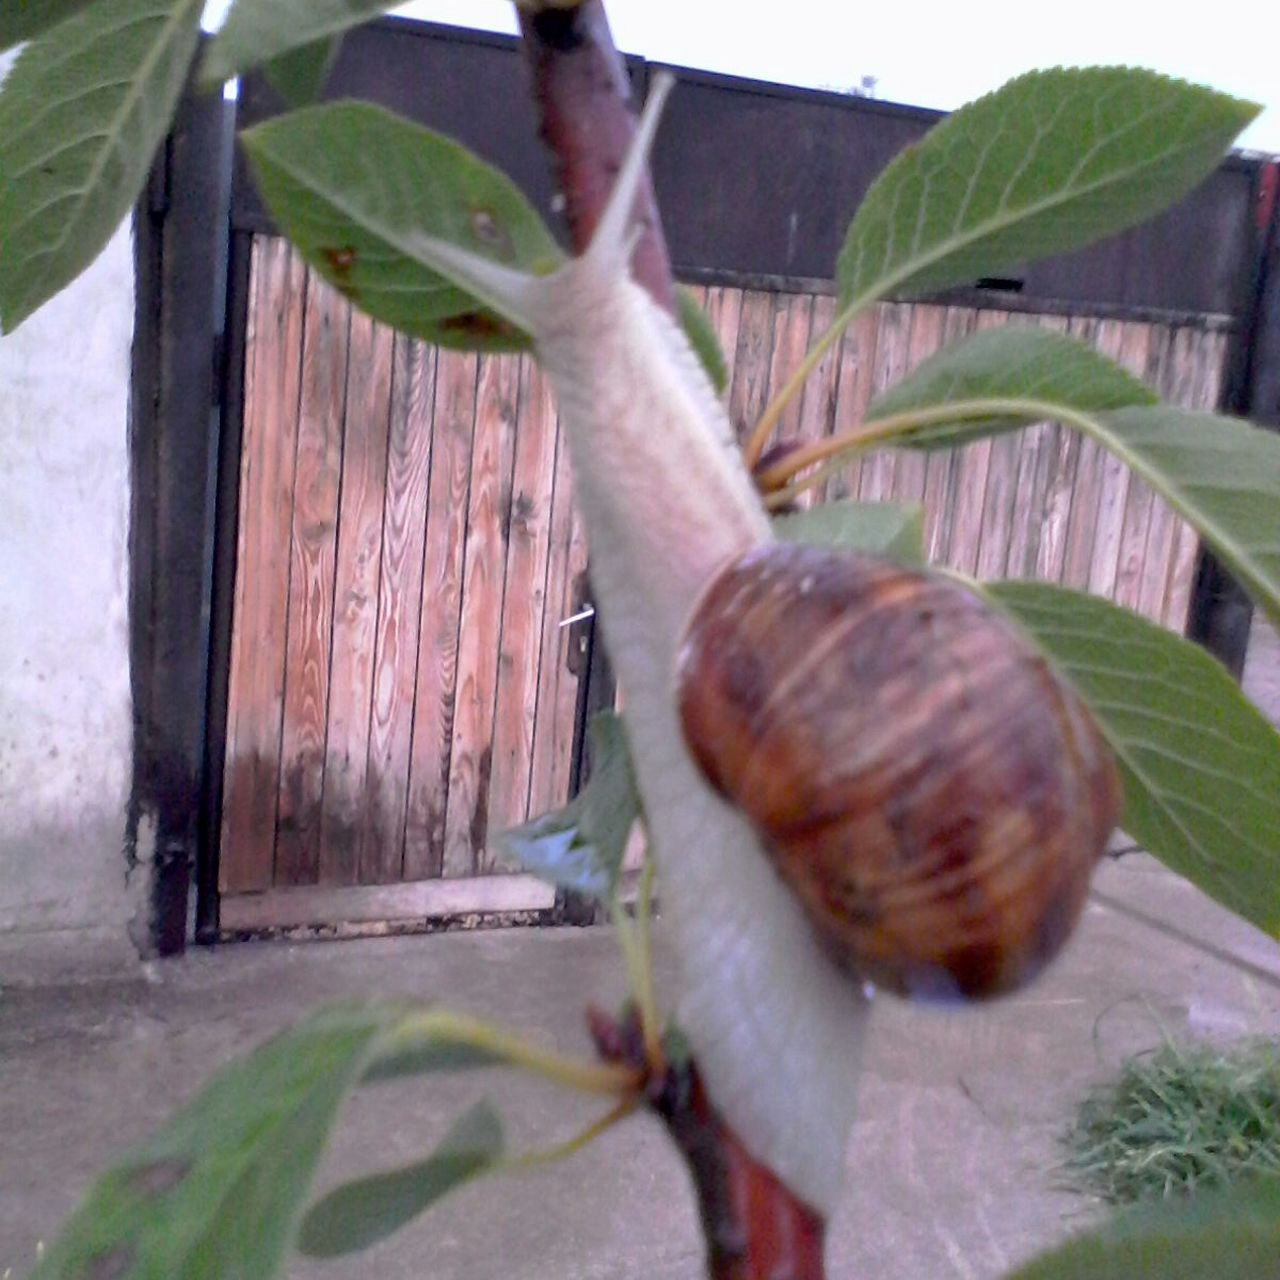 snail, one animal, animal themes, leaf, animals in the wild, day, gastropod, no people, nature, outdoors, close-up